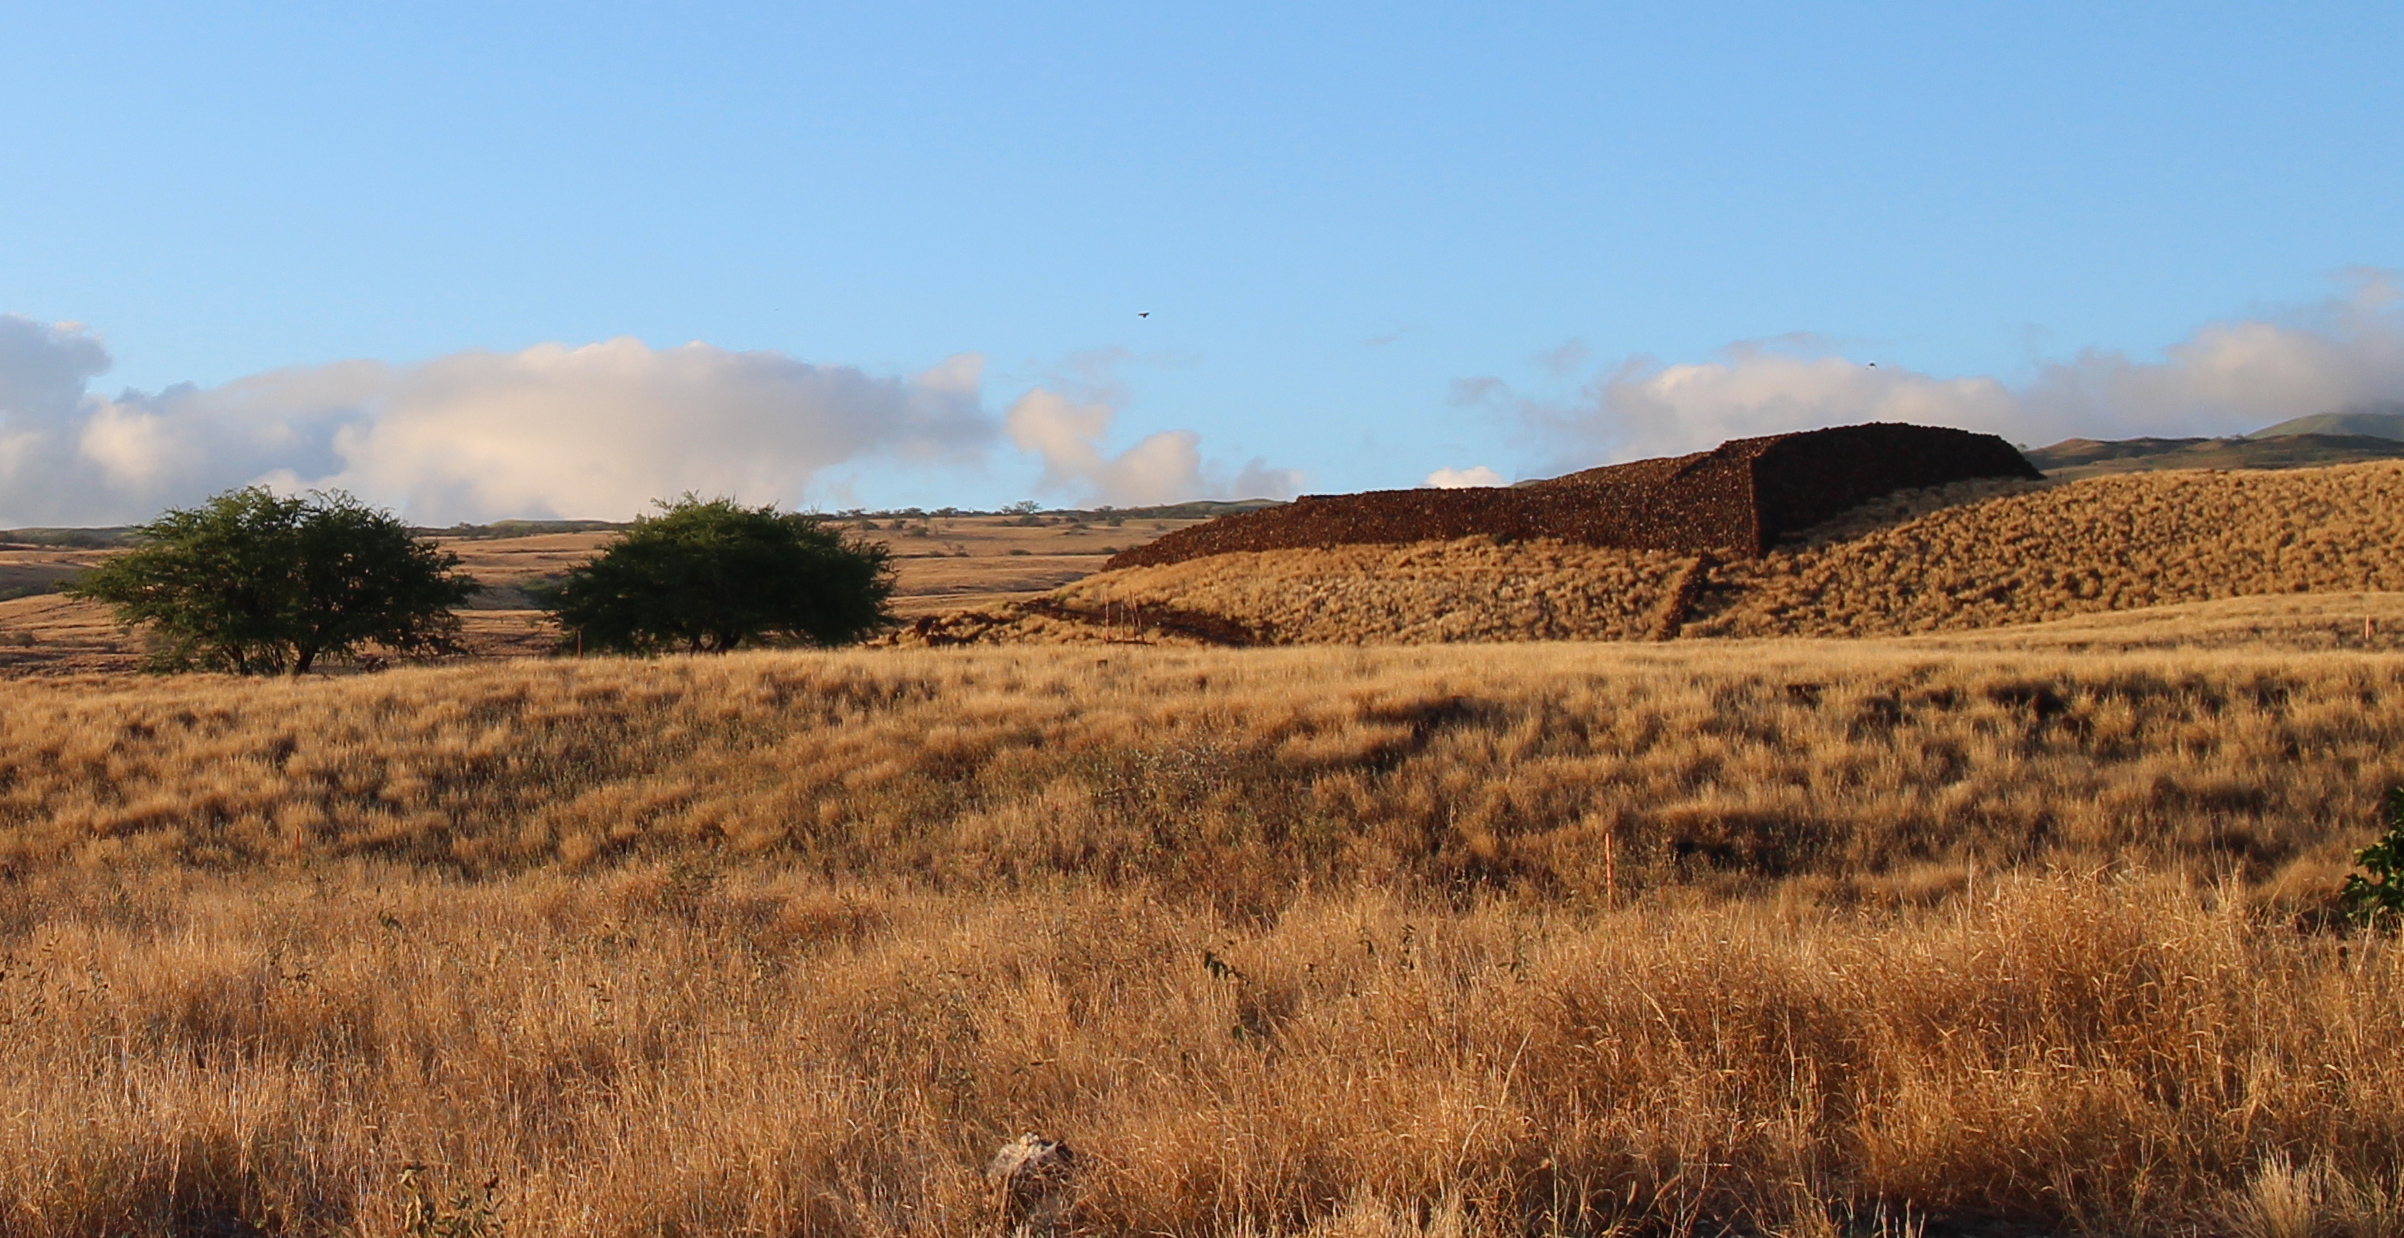 Puʿukohola Heiau, completed in 1971 for Kamehameha I. Photo by Laura Brewington.